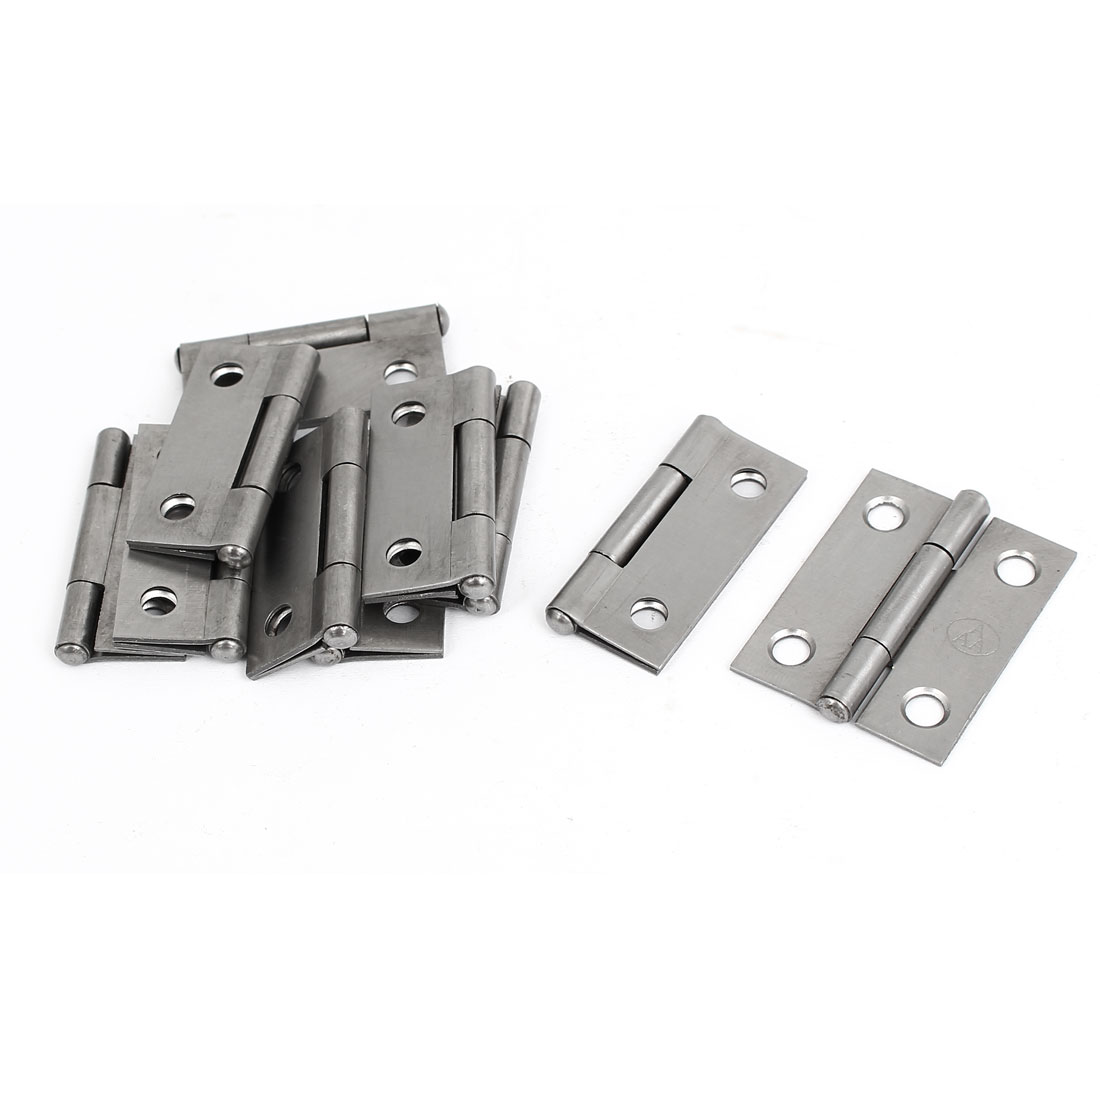 "Cupboard Showcase Door Toolbox Iron Butt Hinge Silver Gray 1.5"" Long 10pcs"